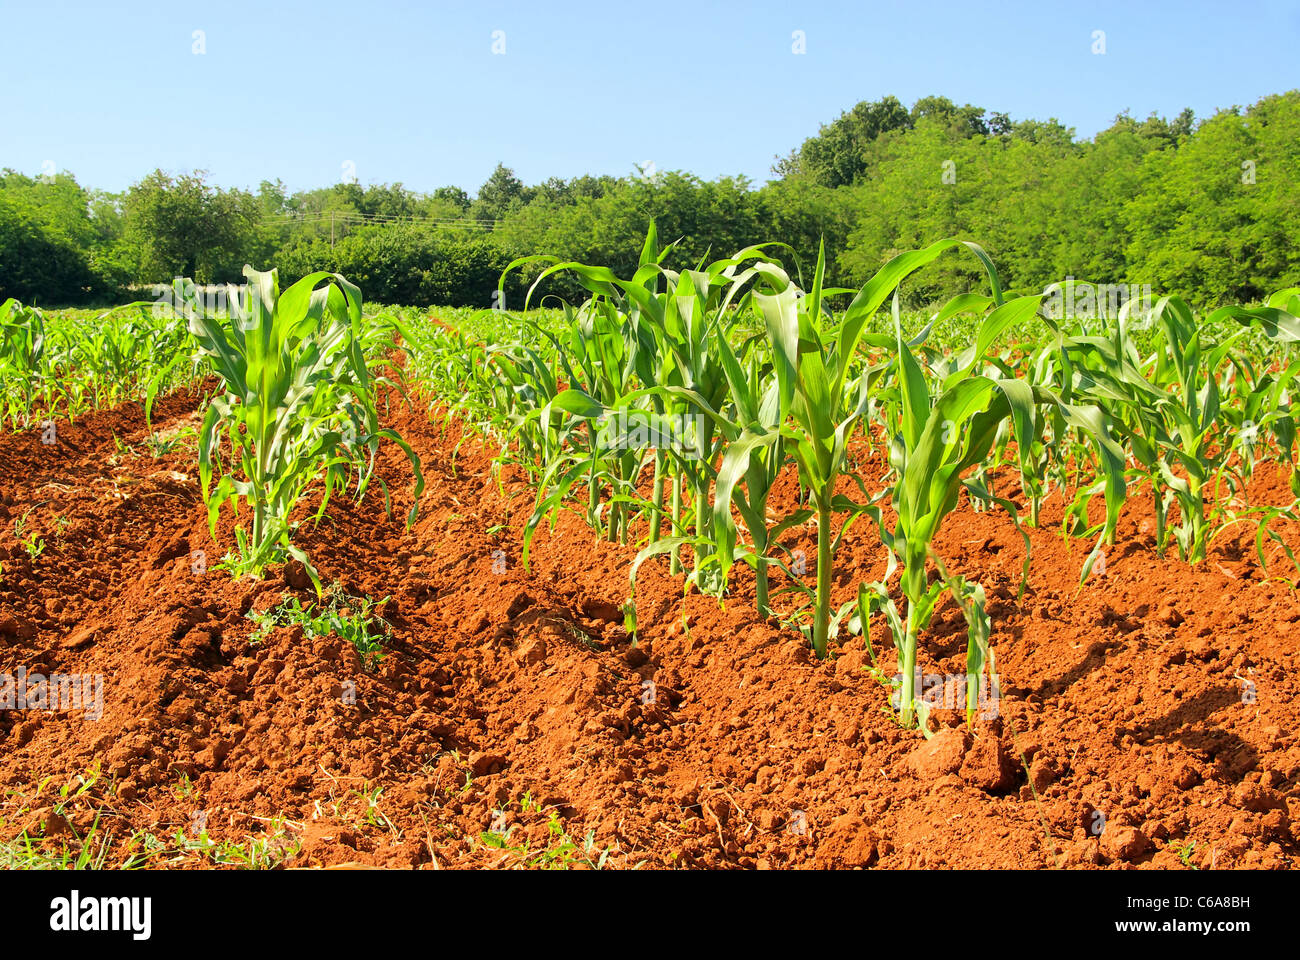 Maisfeld - corn field 03 - Stock Image